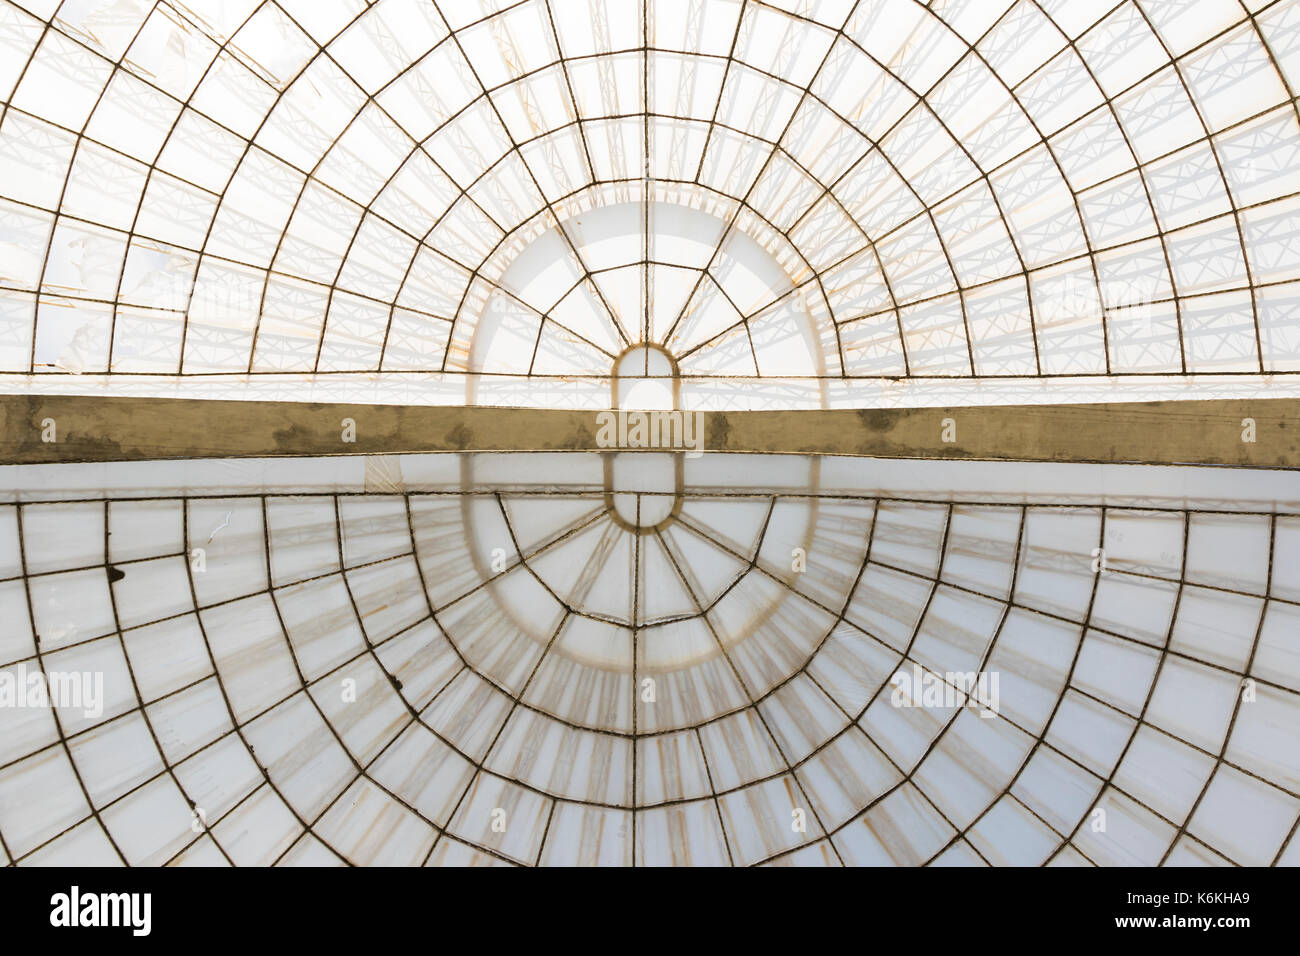 greenhouse symmetrical dome horizonal structure seen from below - Stock Image